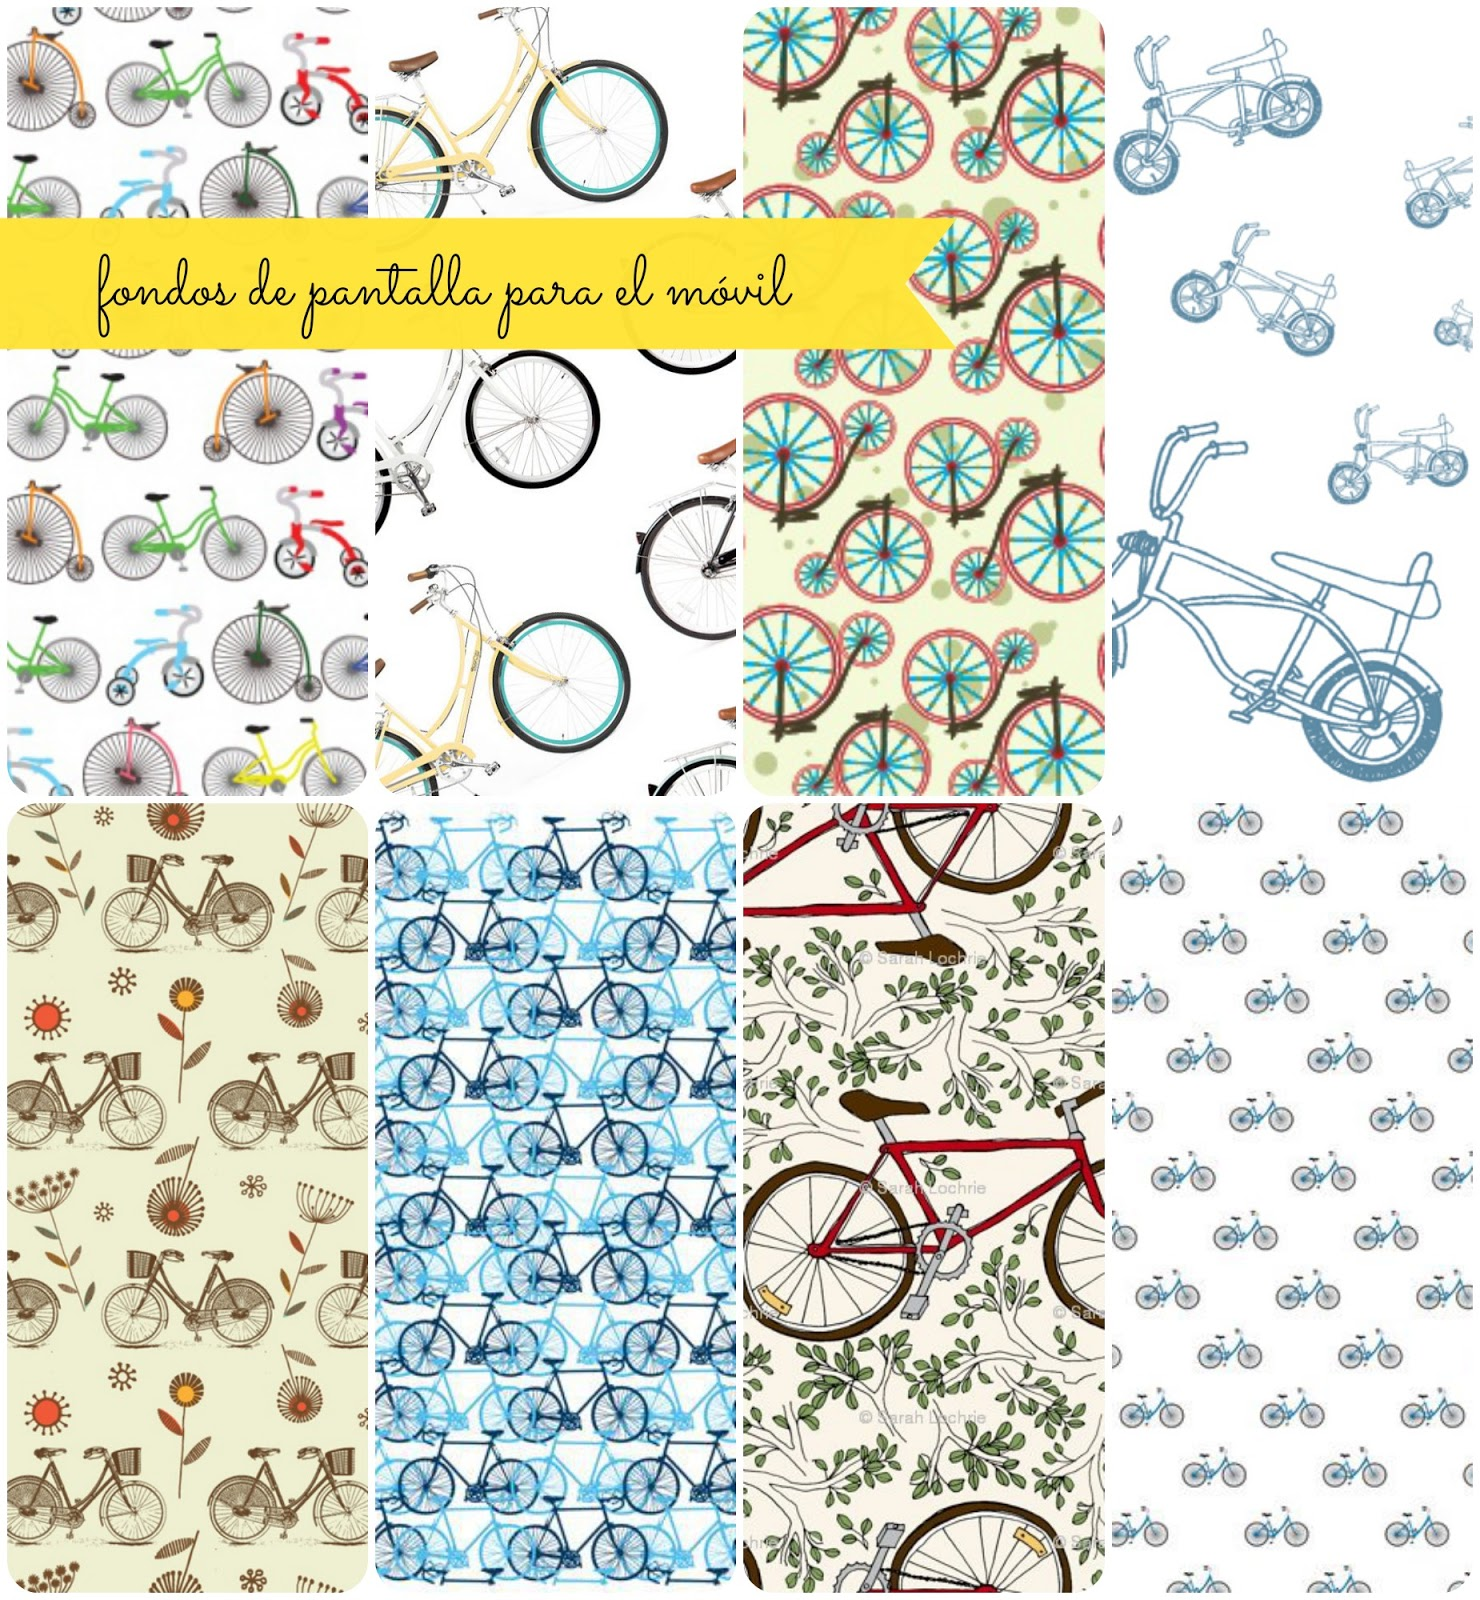 fondos de pantalla bicicletas bicycle para el móvil  wallpaper background iphone gratis free.jpg